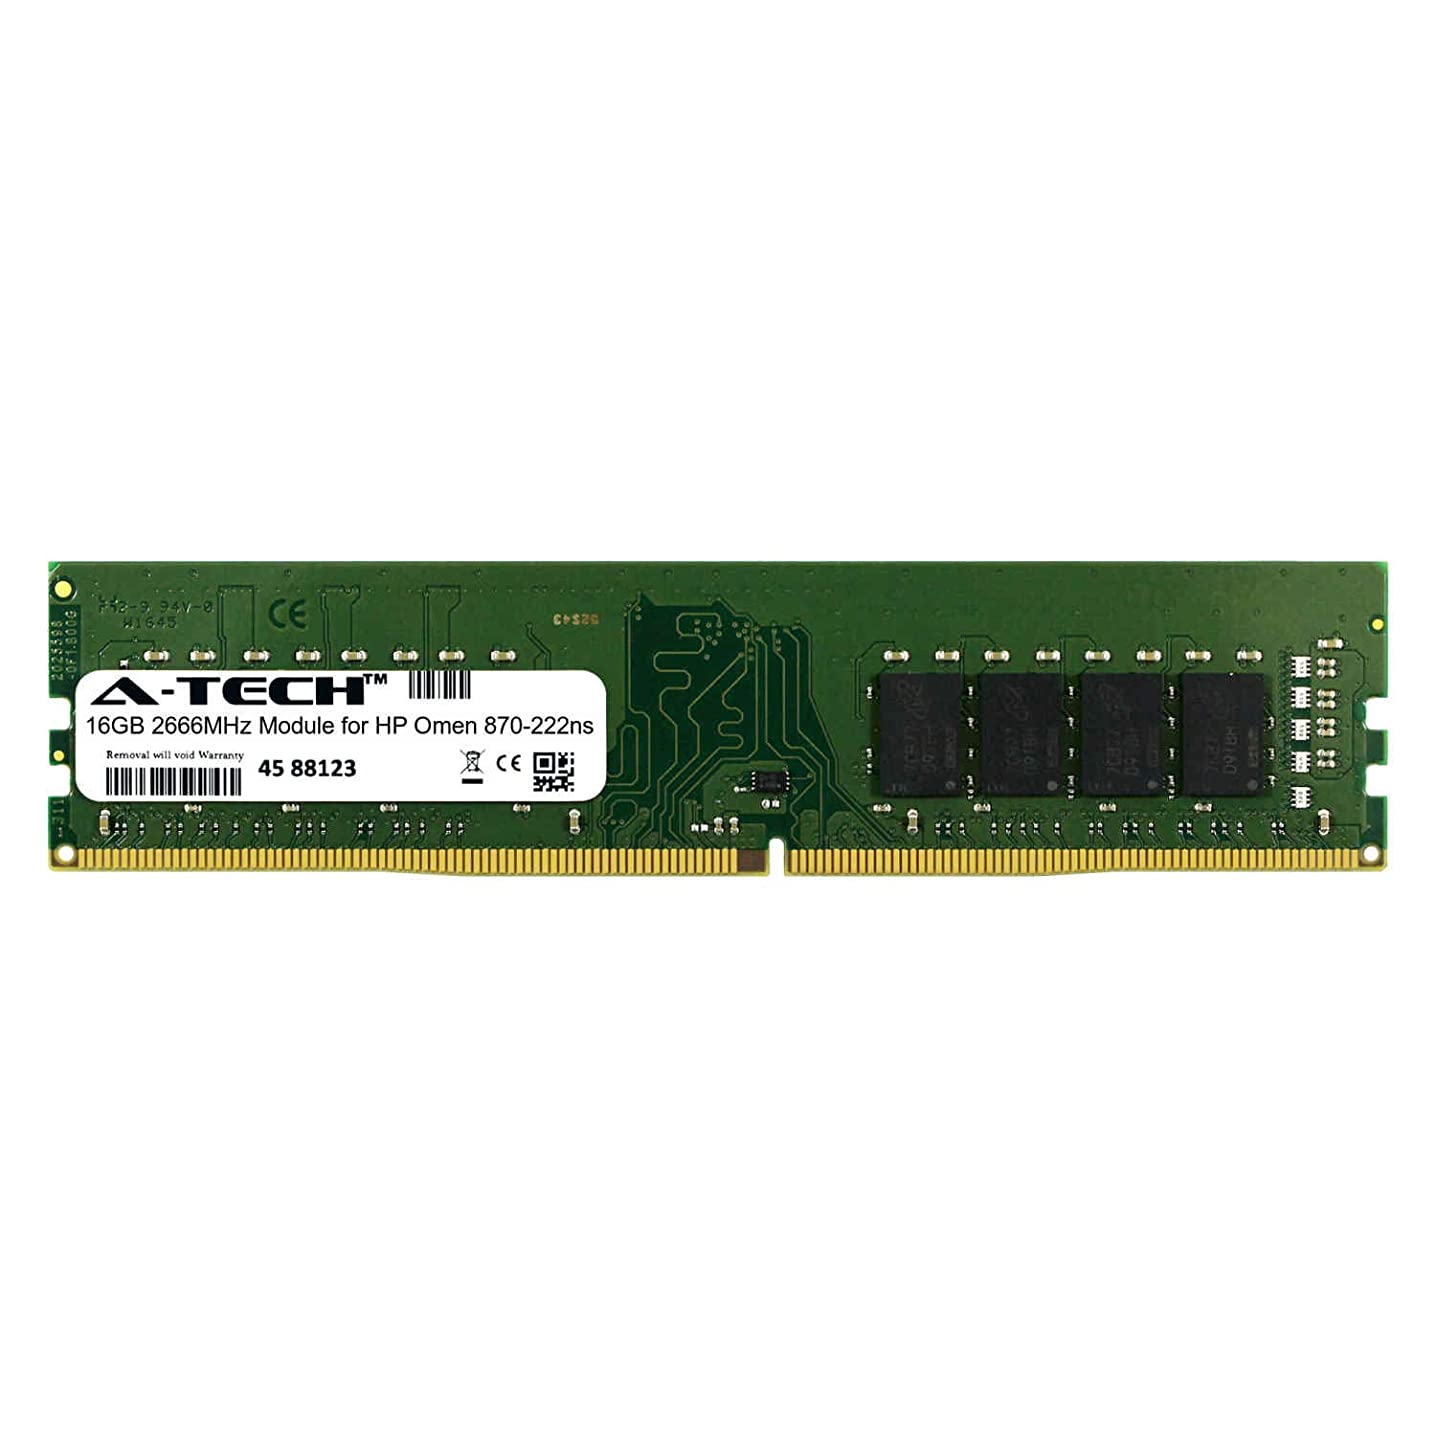 A-Tech 16GB Module for HP Omen 870-222ns Desktop & Workstation Motherboard Compatible DDR4 2666Mhz Memory Ram (ATMS282272A25823X1)